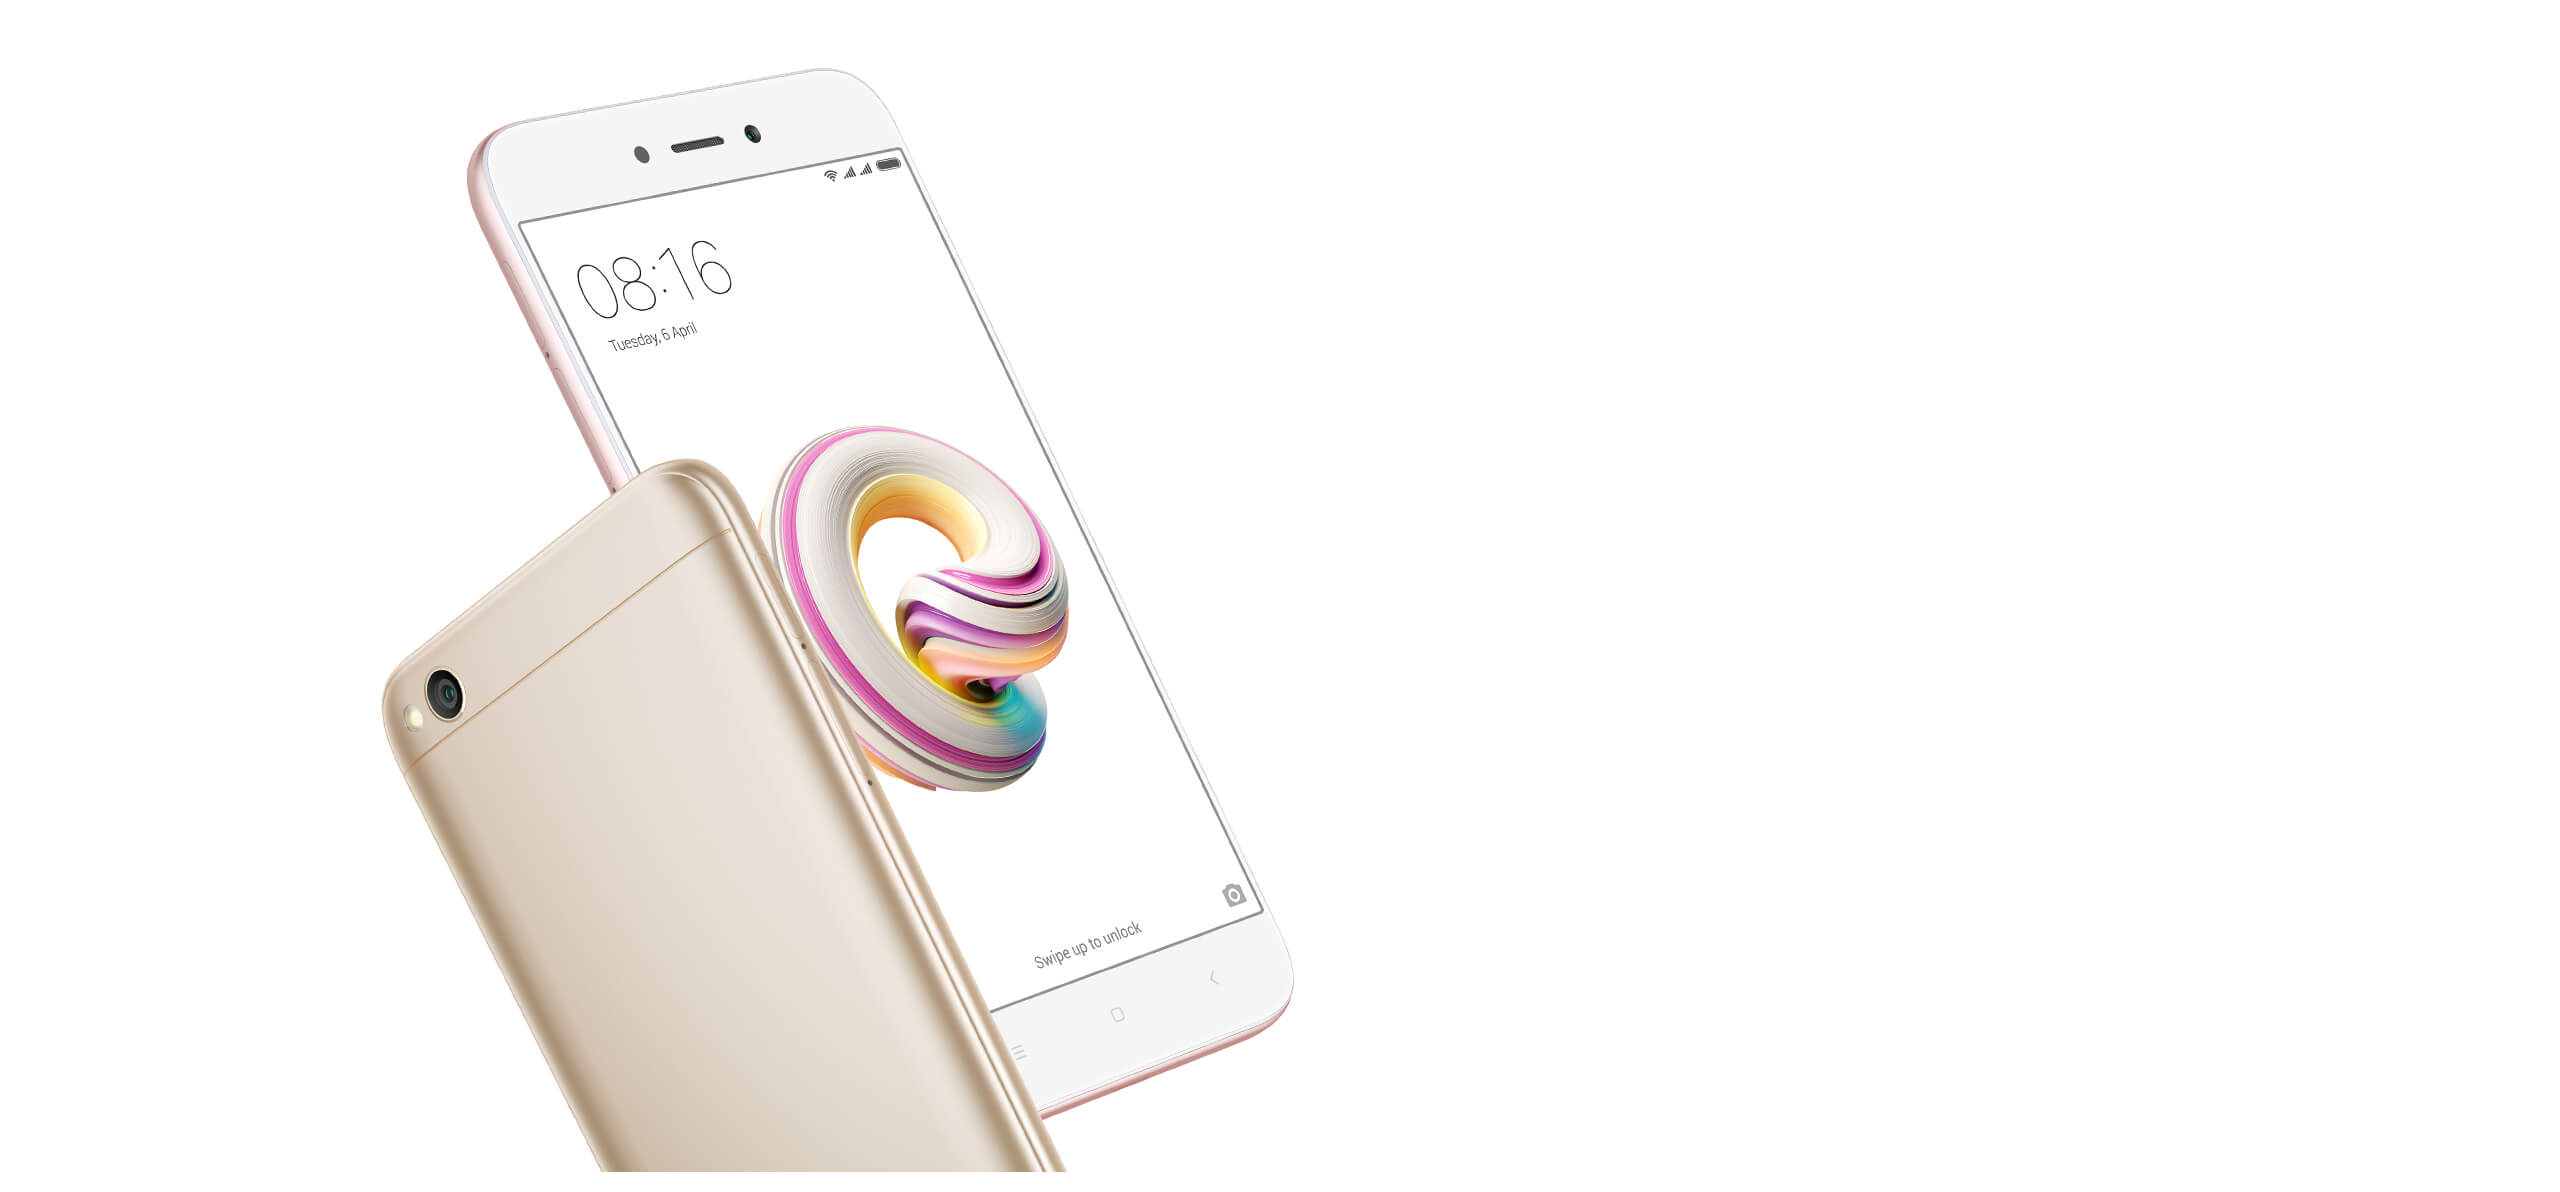 Design and Display of Redmi 5A